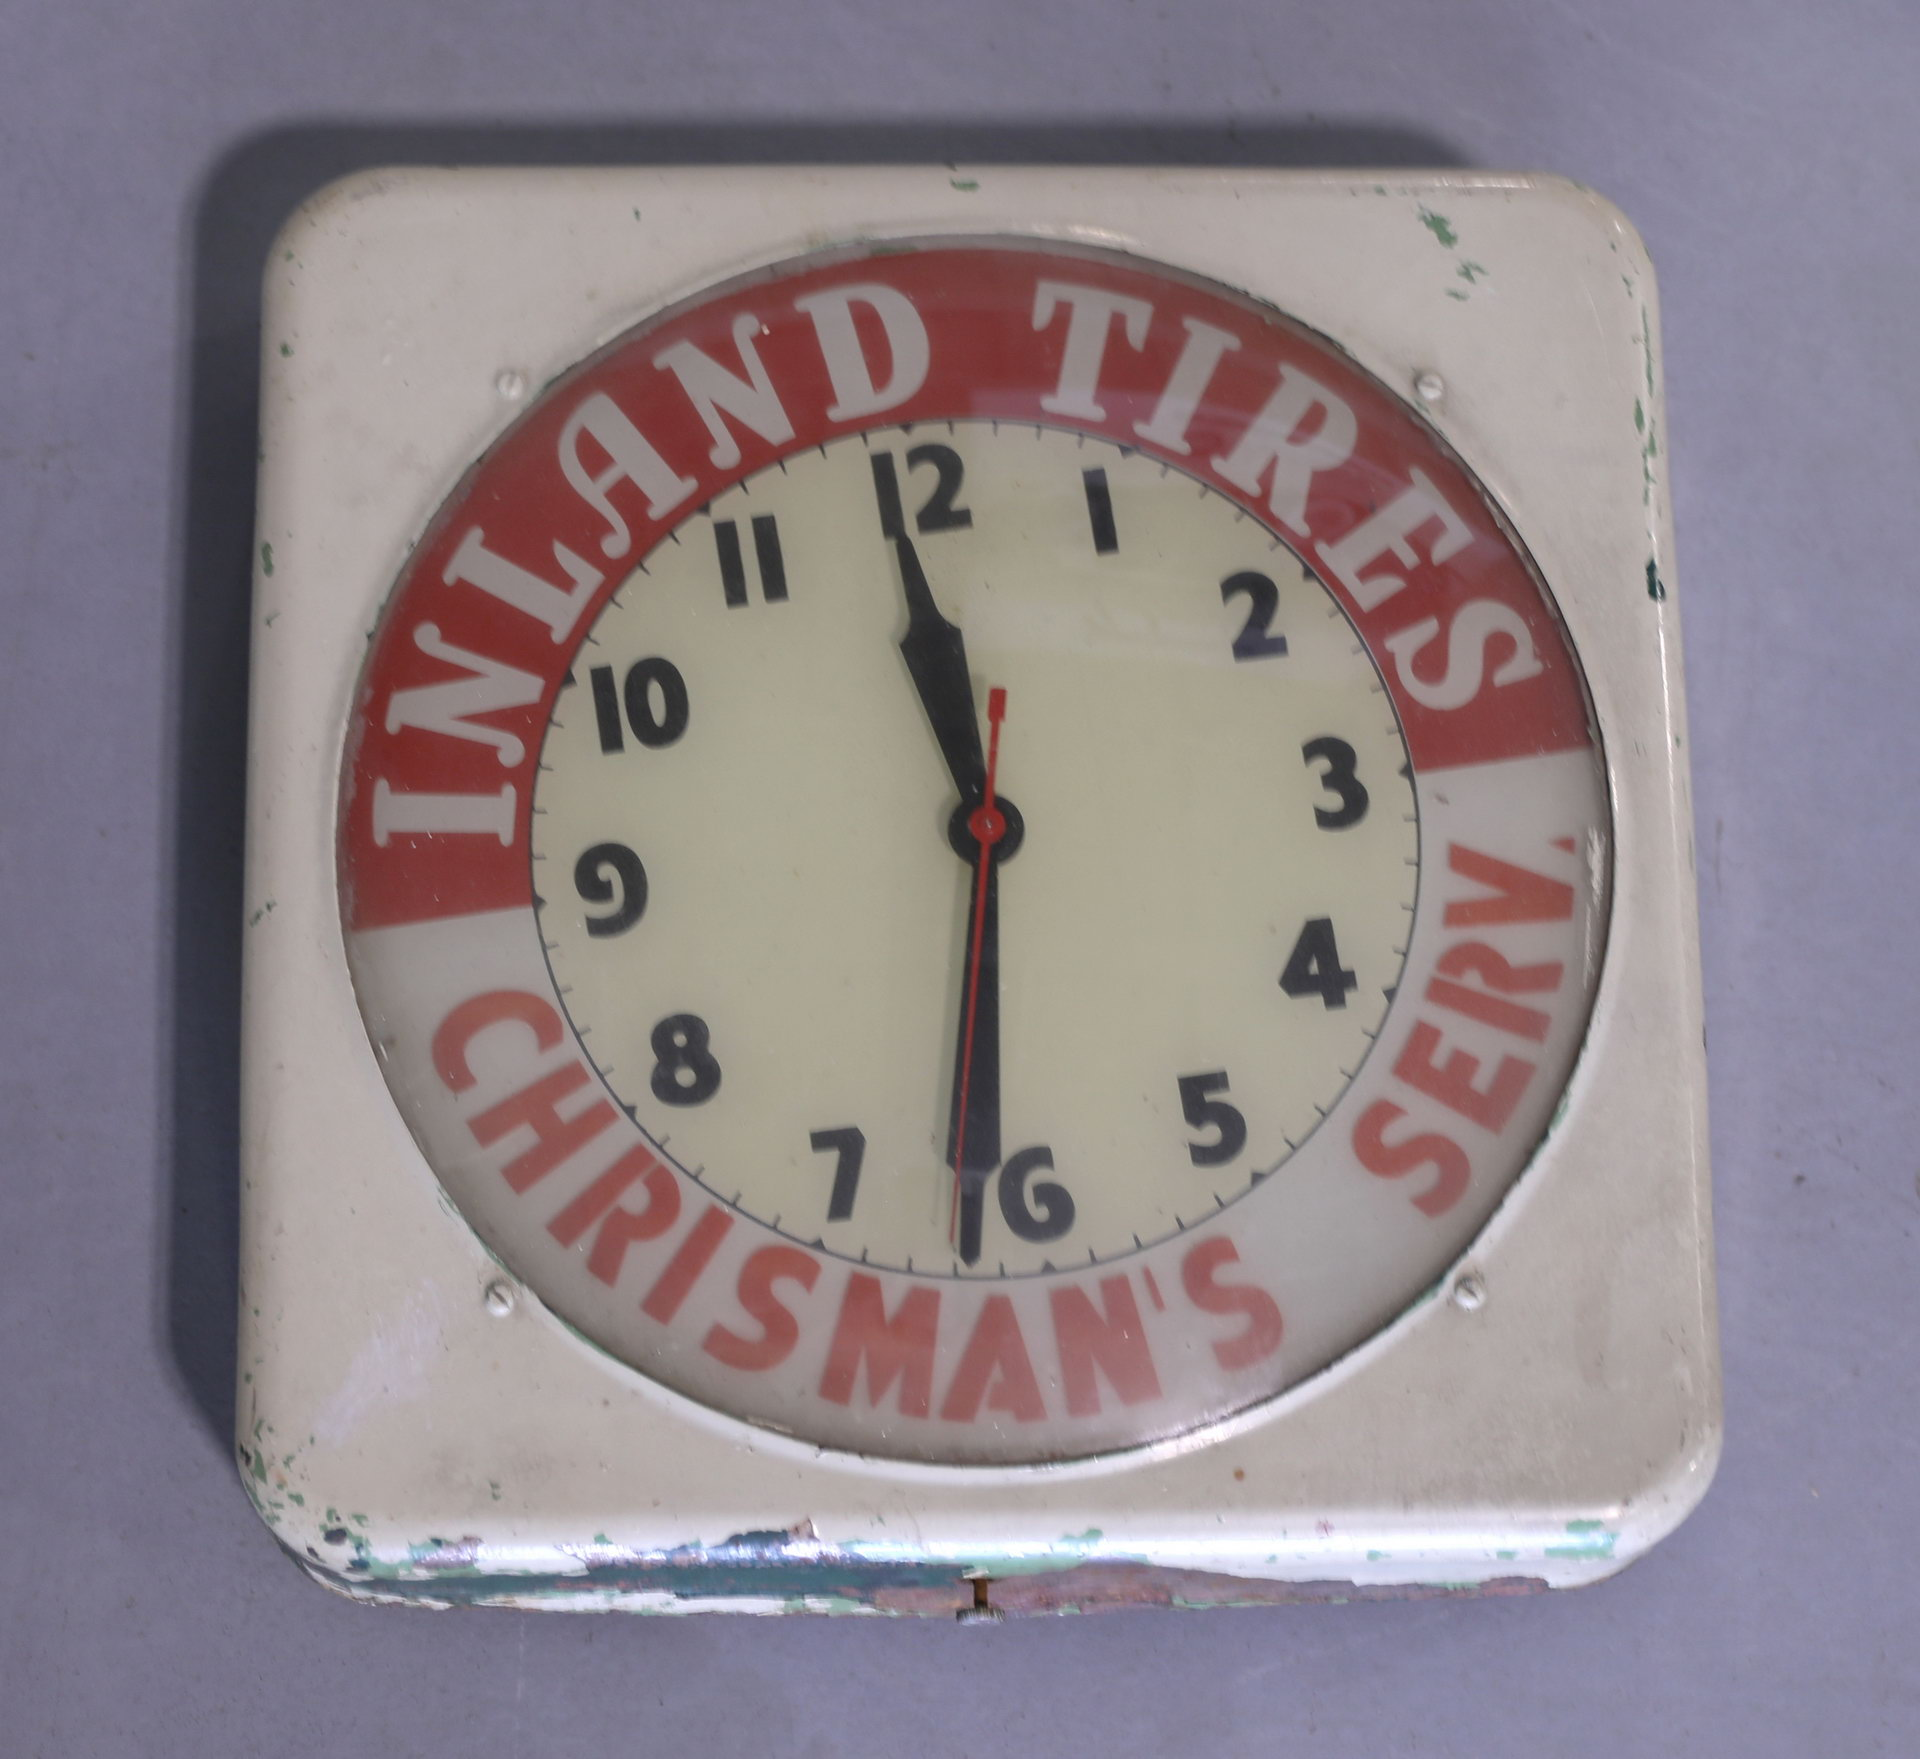 Inland Tires Chrisman's Service Station Advertising Clock